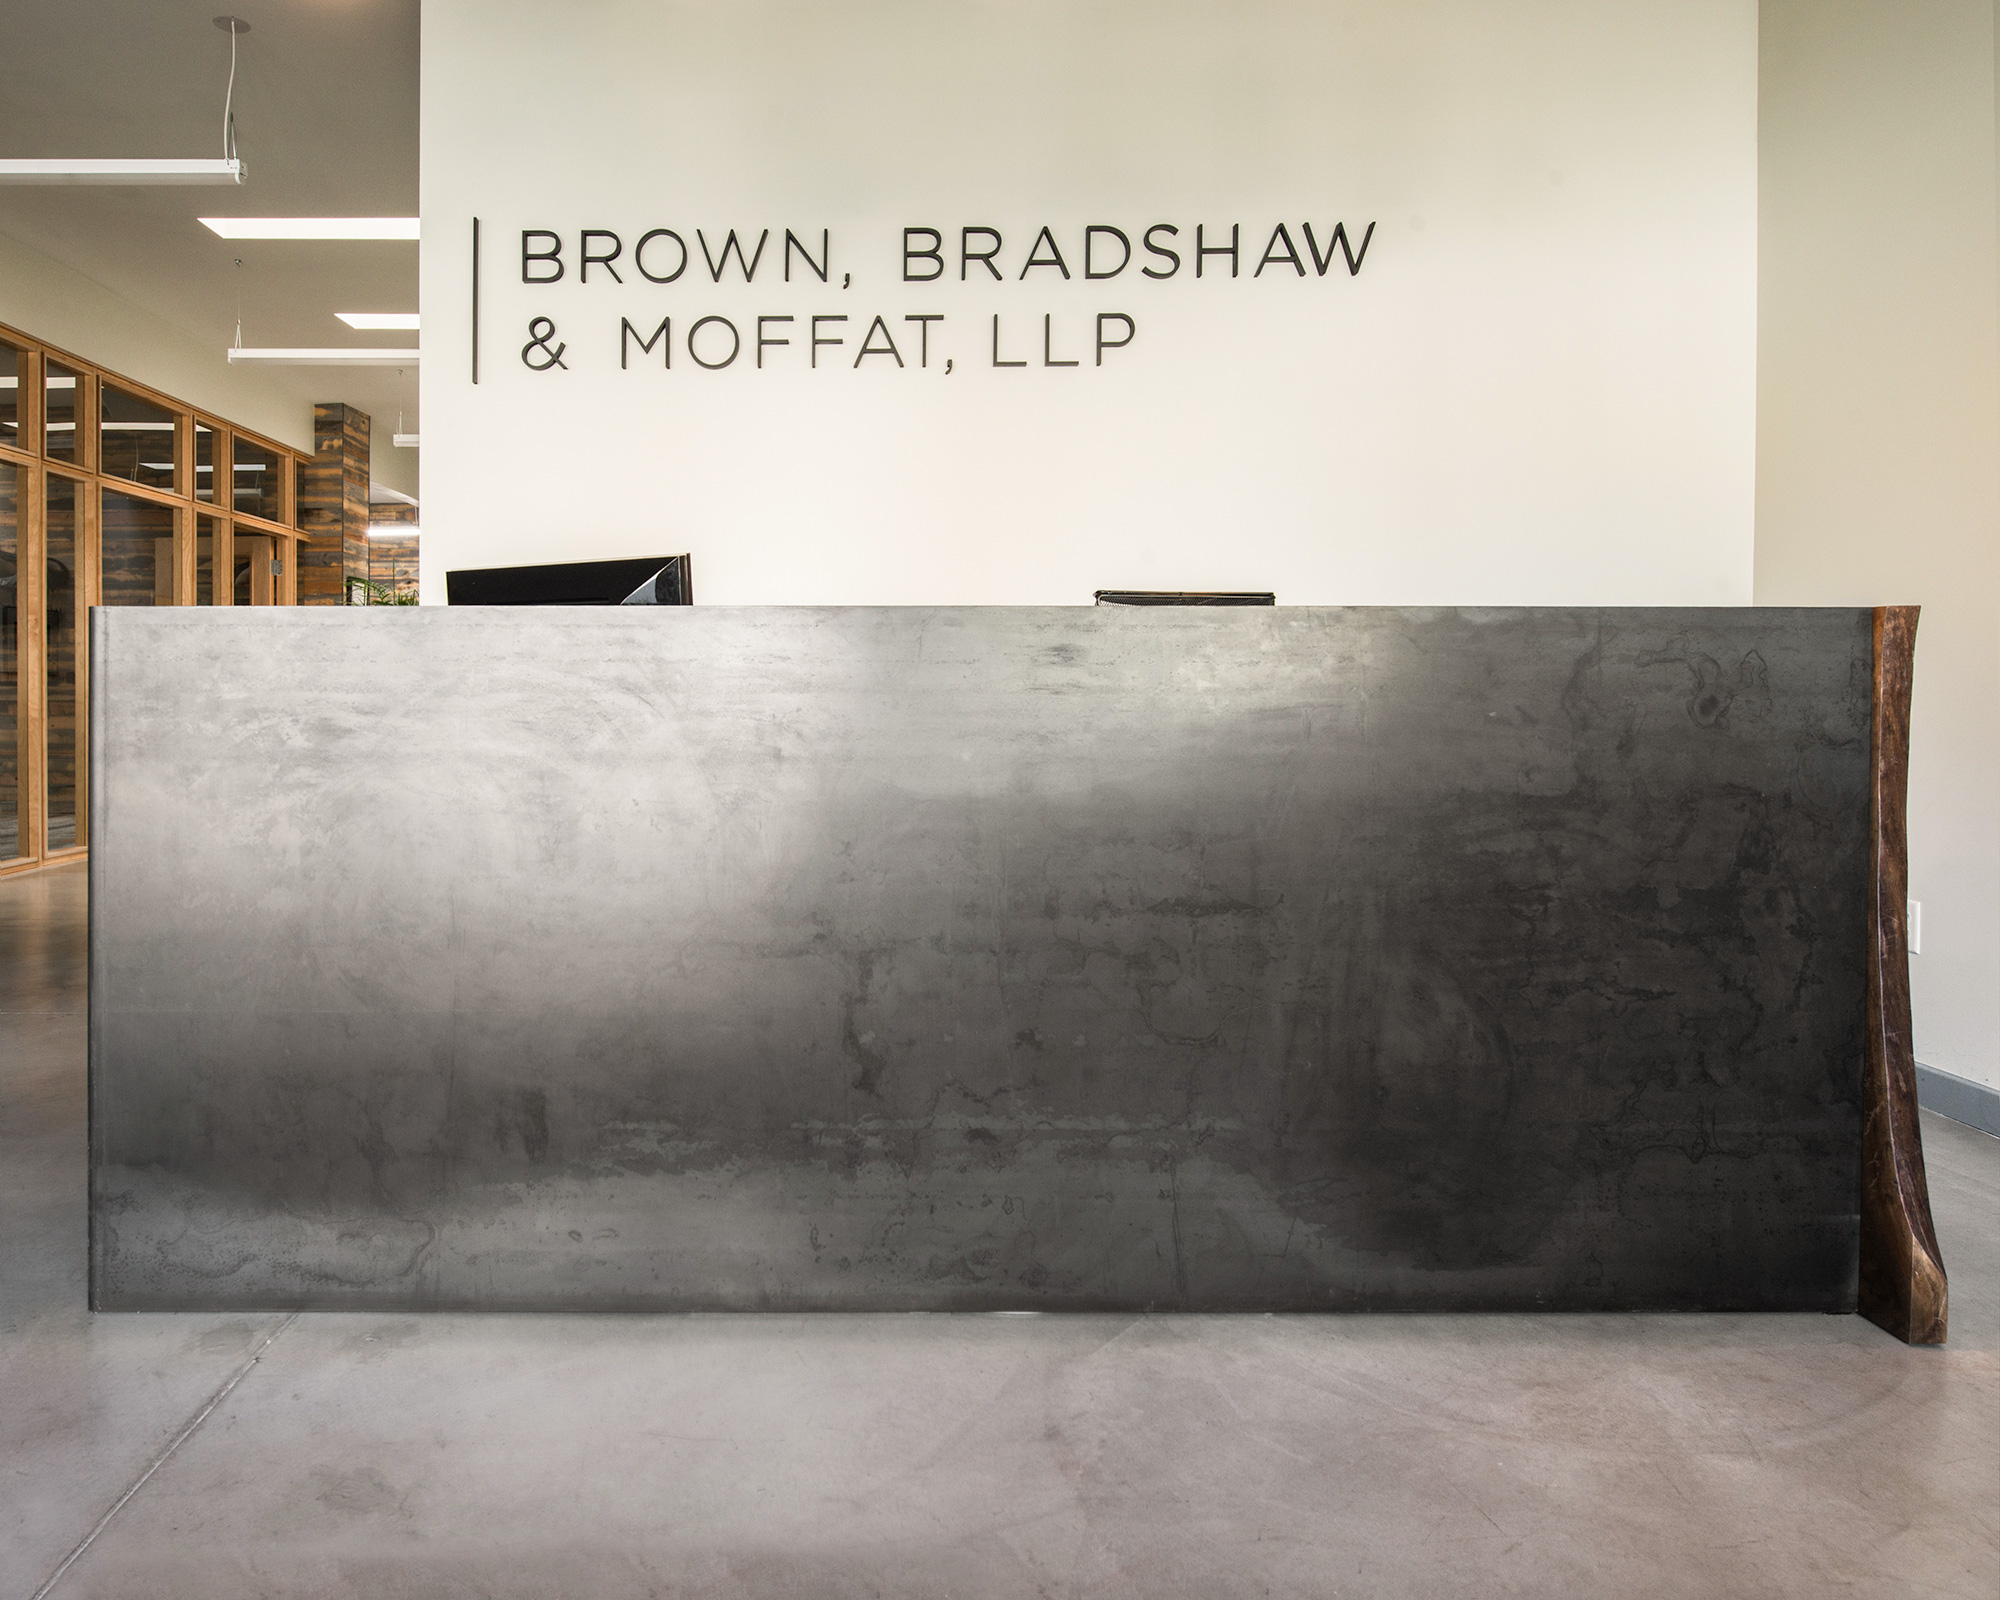 Brown, Bradshaw, & Moffat, LLP Reception Desk